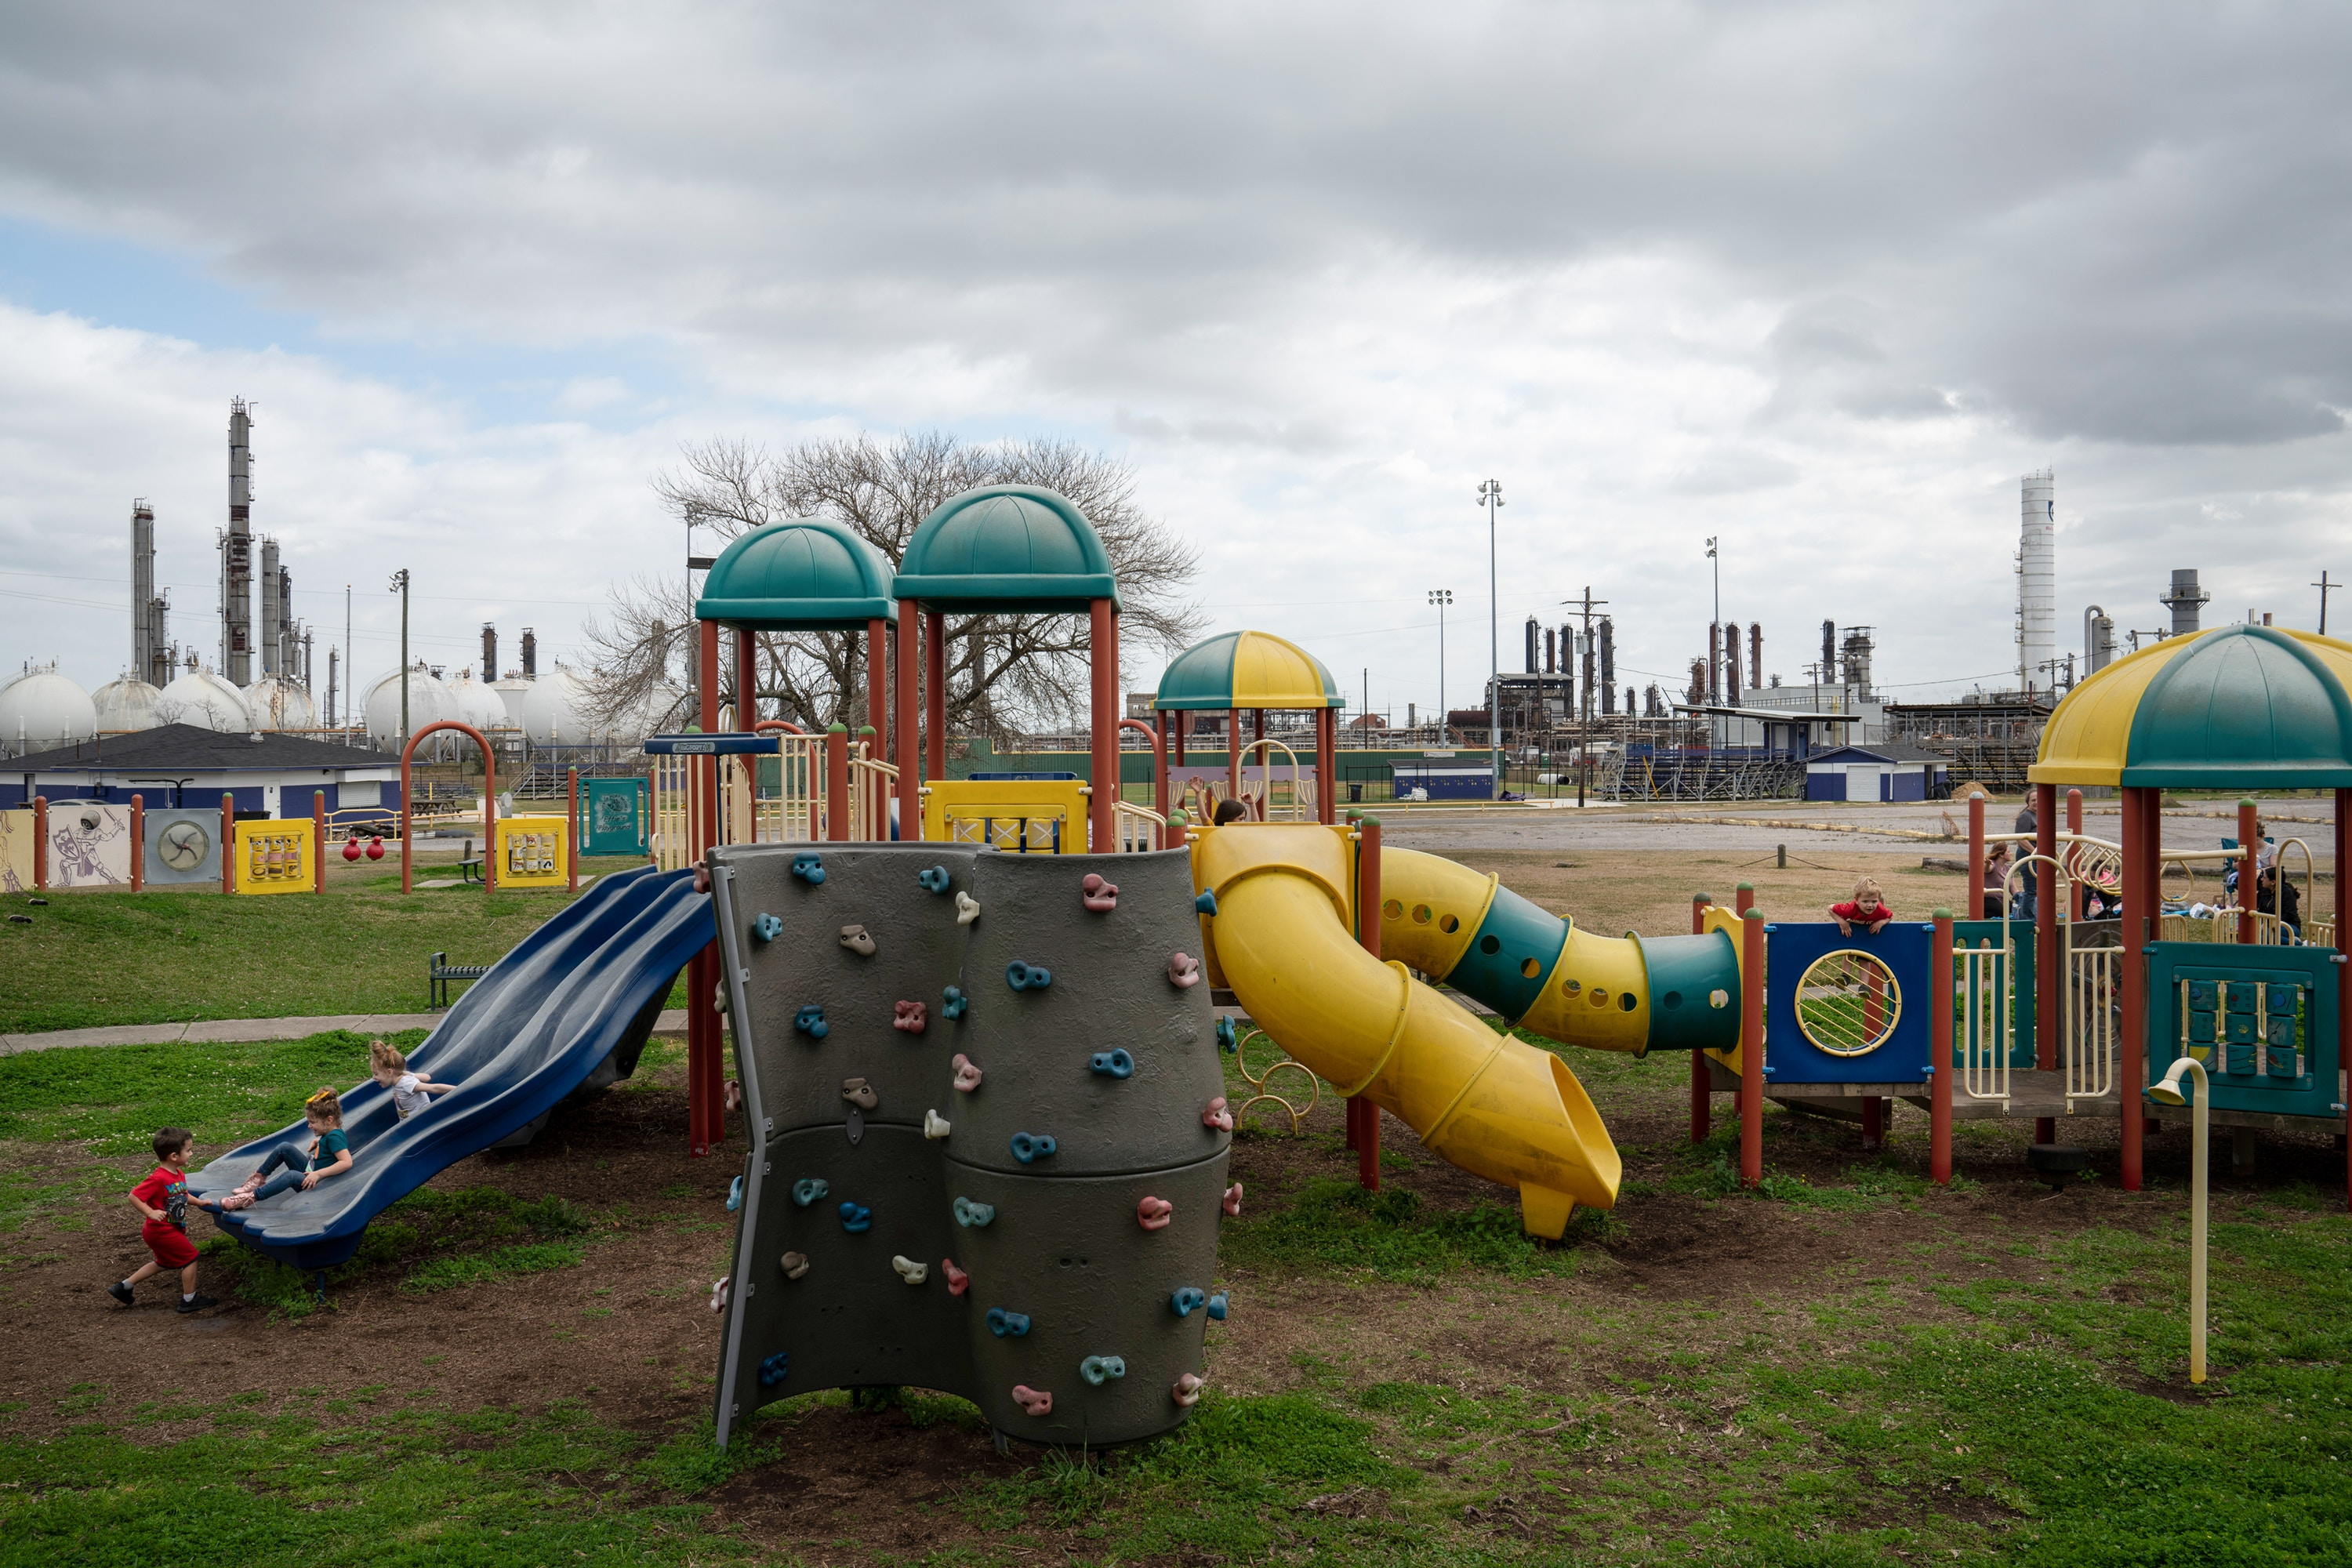 Children are seen at a playground across the TCP Group plant that exploded in late 2019 in Port Neches, Texas on Feb. 4, 2021.Verónica G. Cárdenas for The Intercept